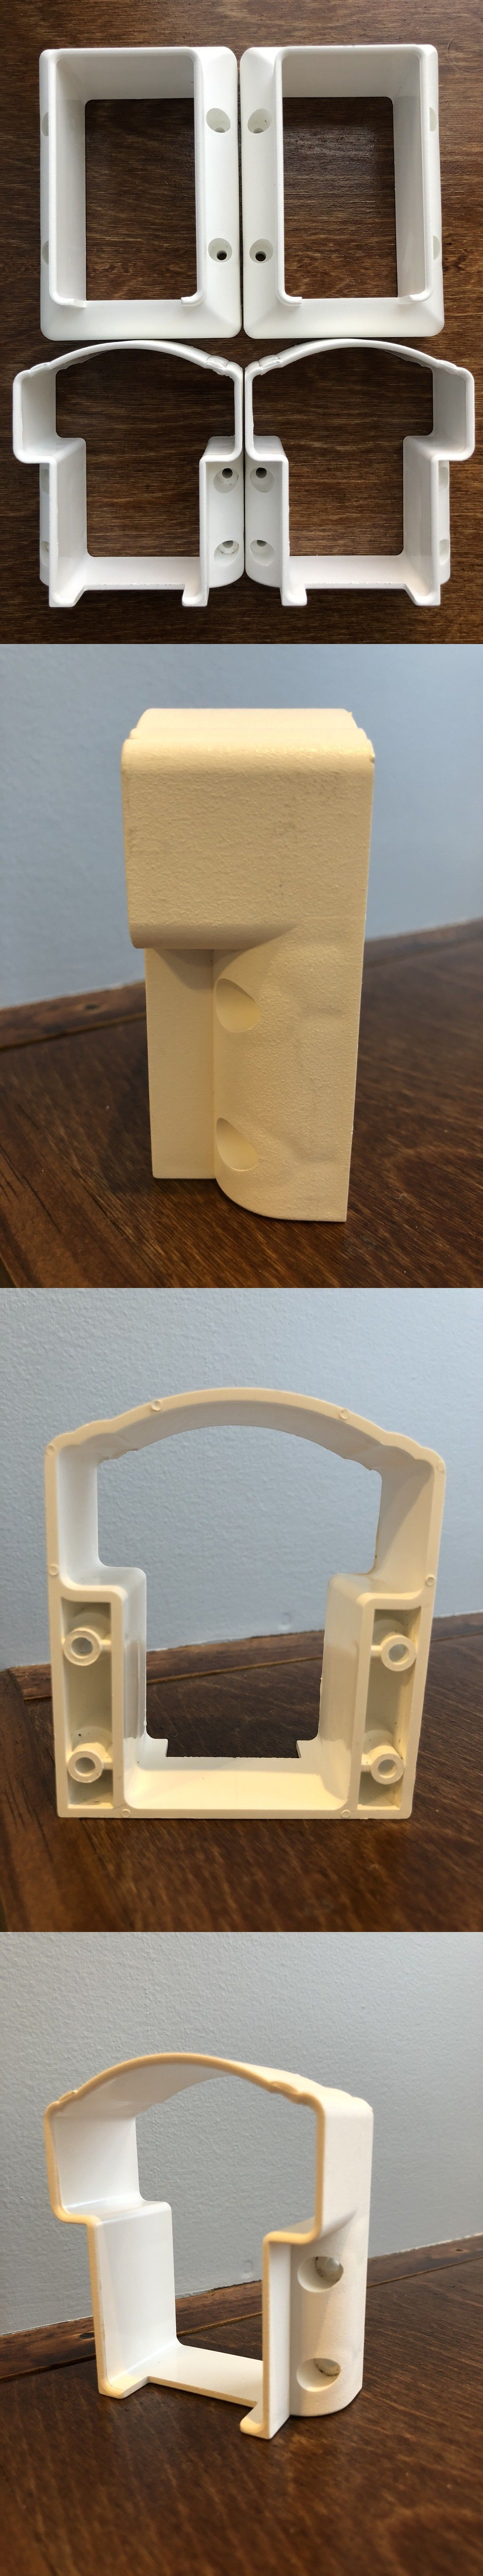 Fencing Clips and Brackets 180987: New - White Vinyl ...